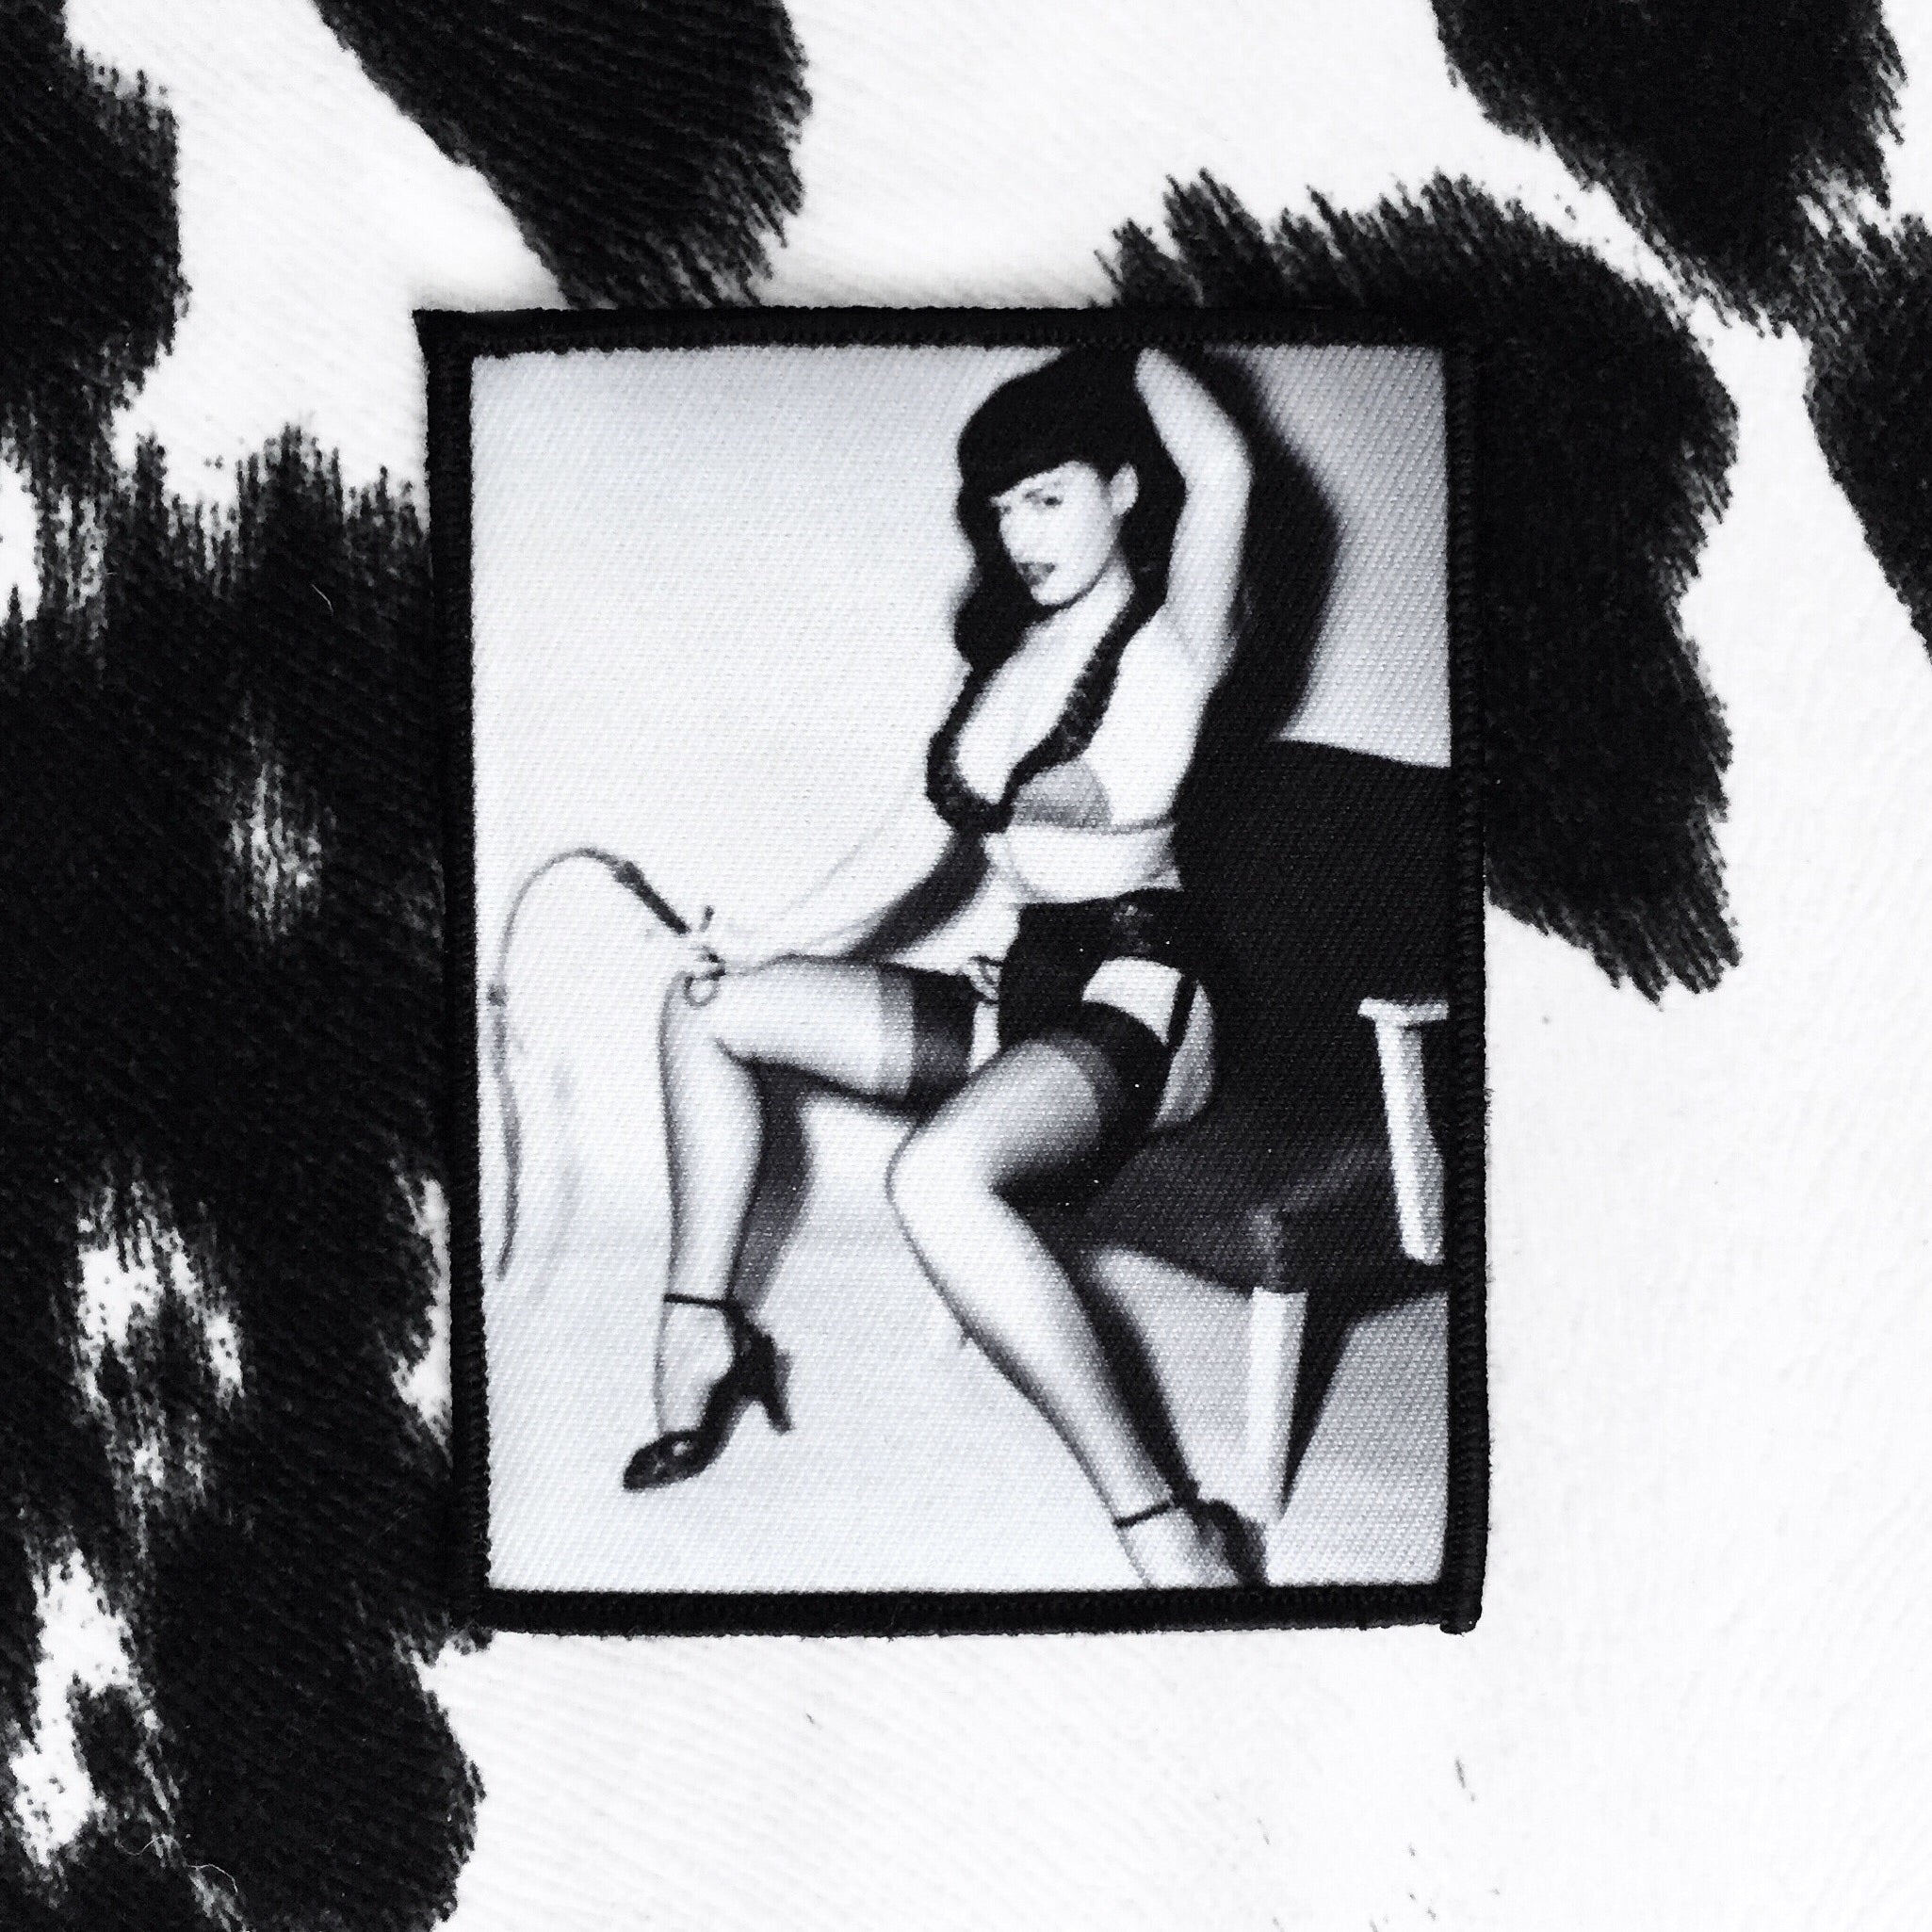 Bettie Page Patch